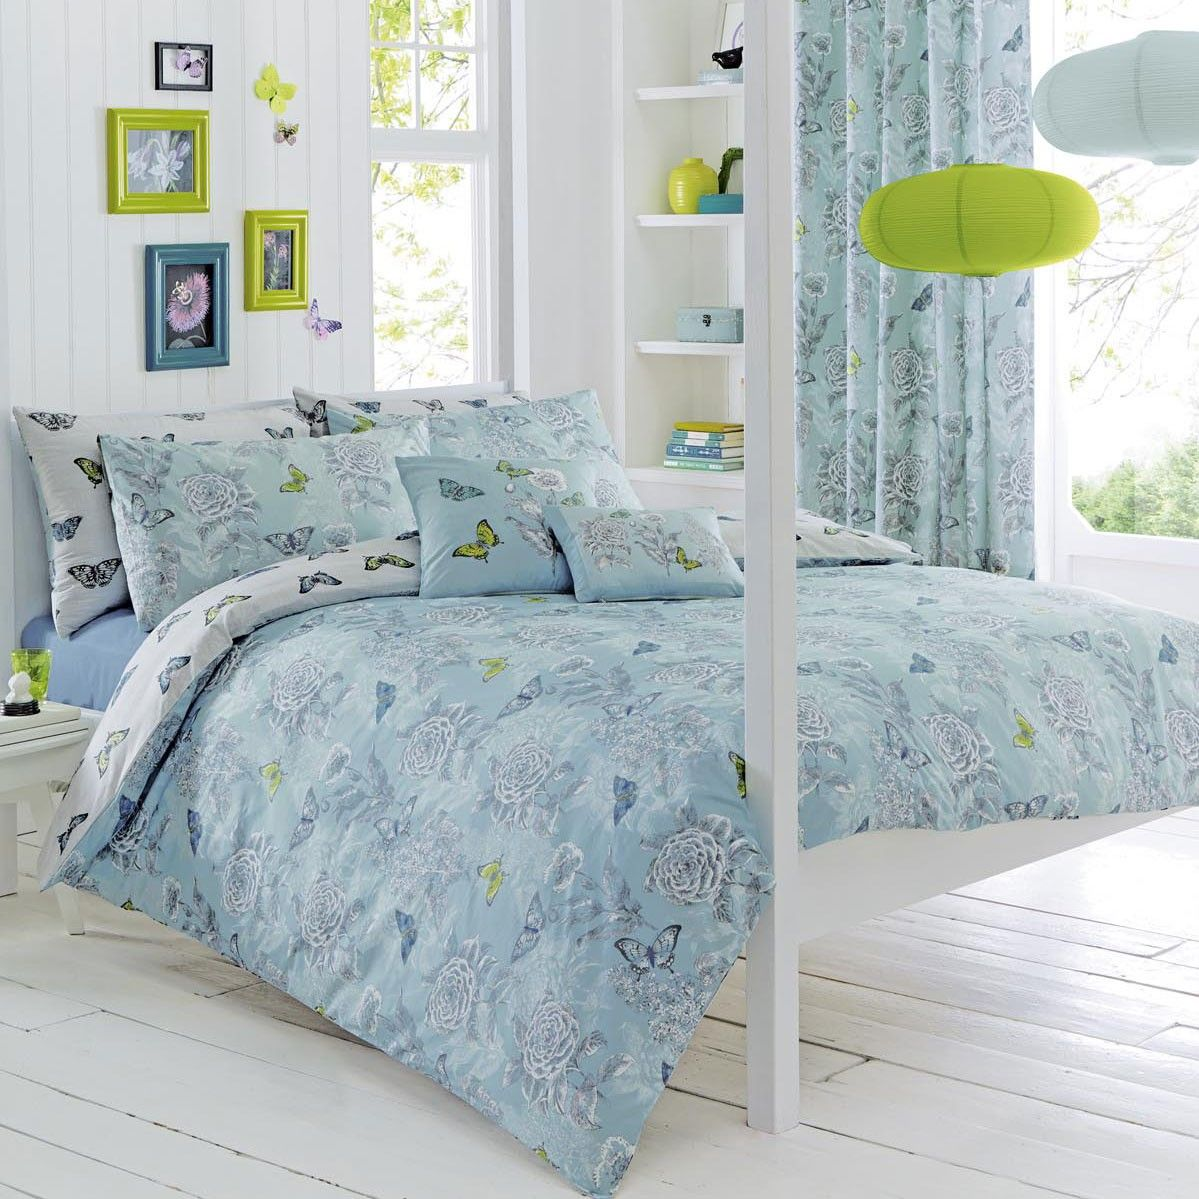 dreams drapes aviana butterfly bedding range duck. Black Bedroom Furniture Sets. Home Design Ideas